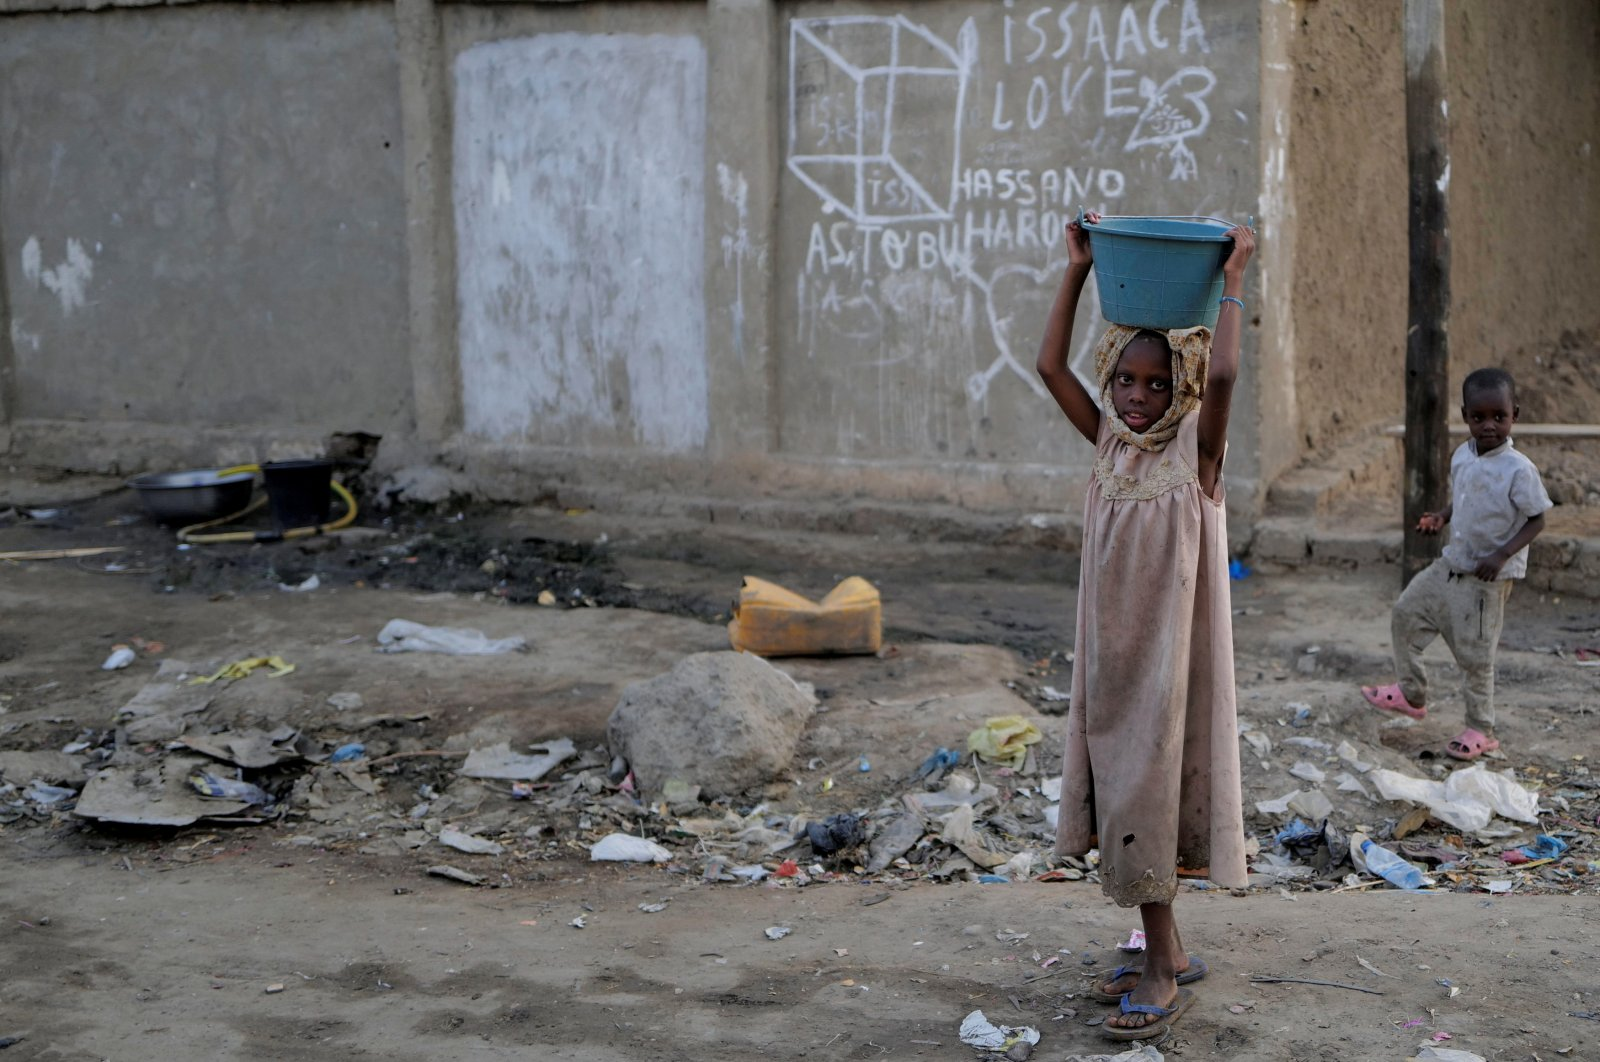 A girl carries a basin in a poor neighbourhood in N'djamena, Chad, April 25, 2021. (REUTERS Photo)